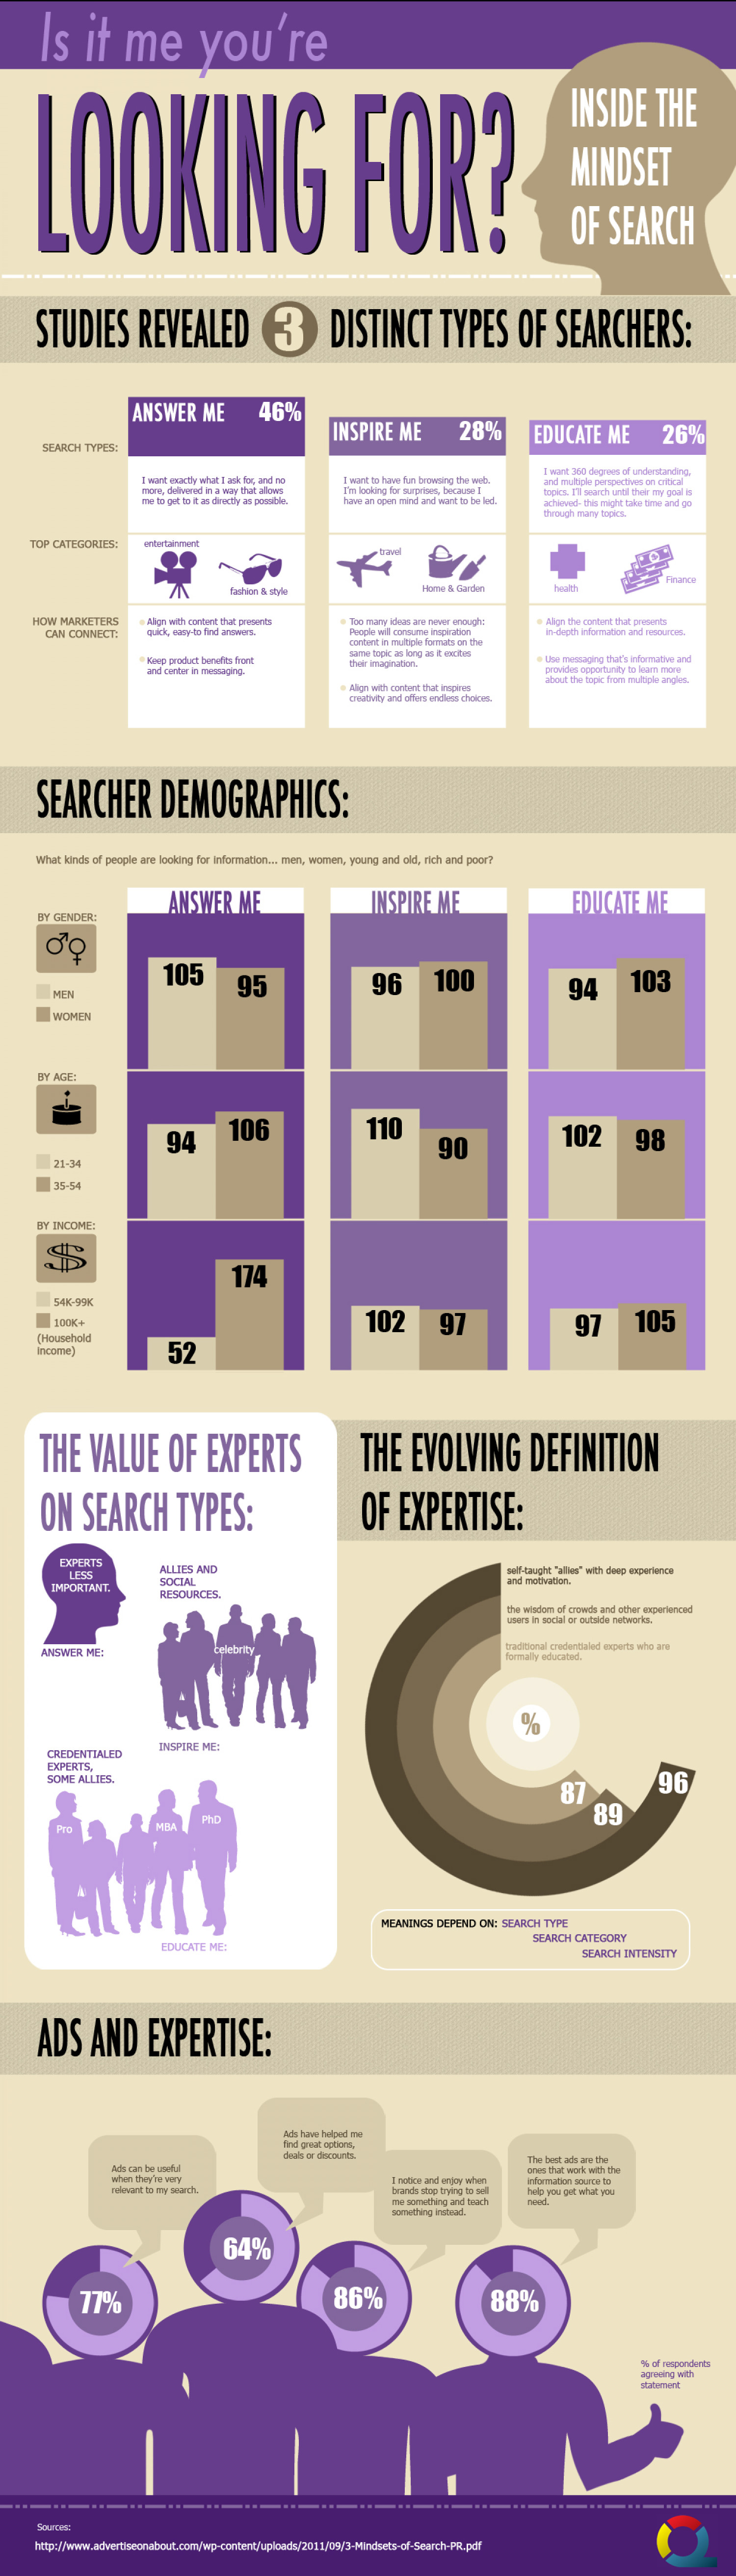 Is It Me You're Looking For? Inside the Mindset of Search  Infographic